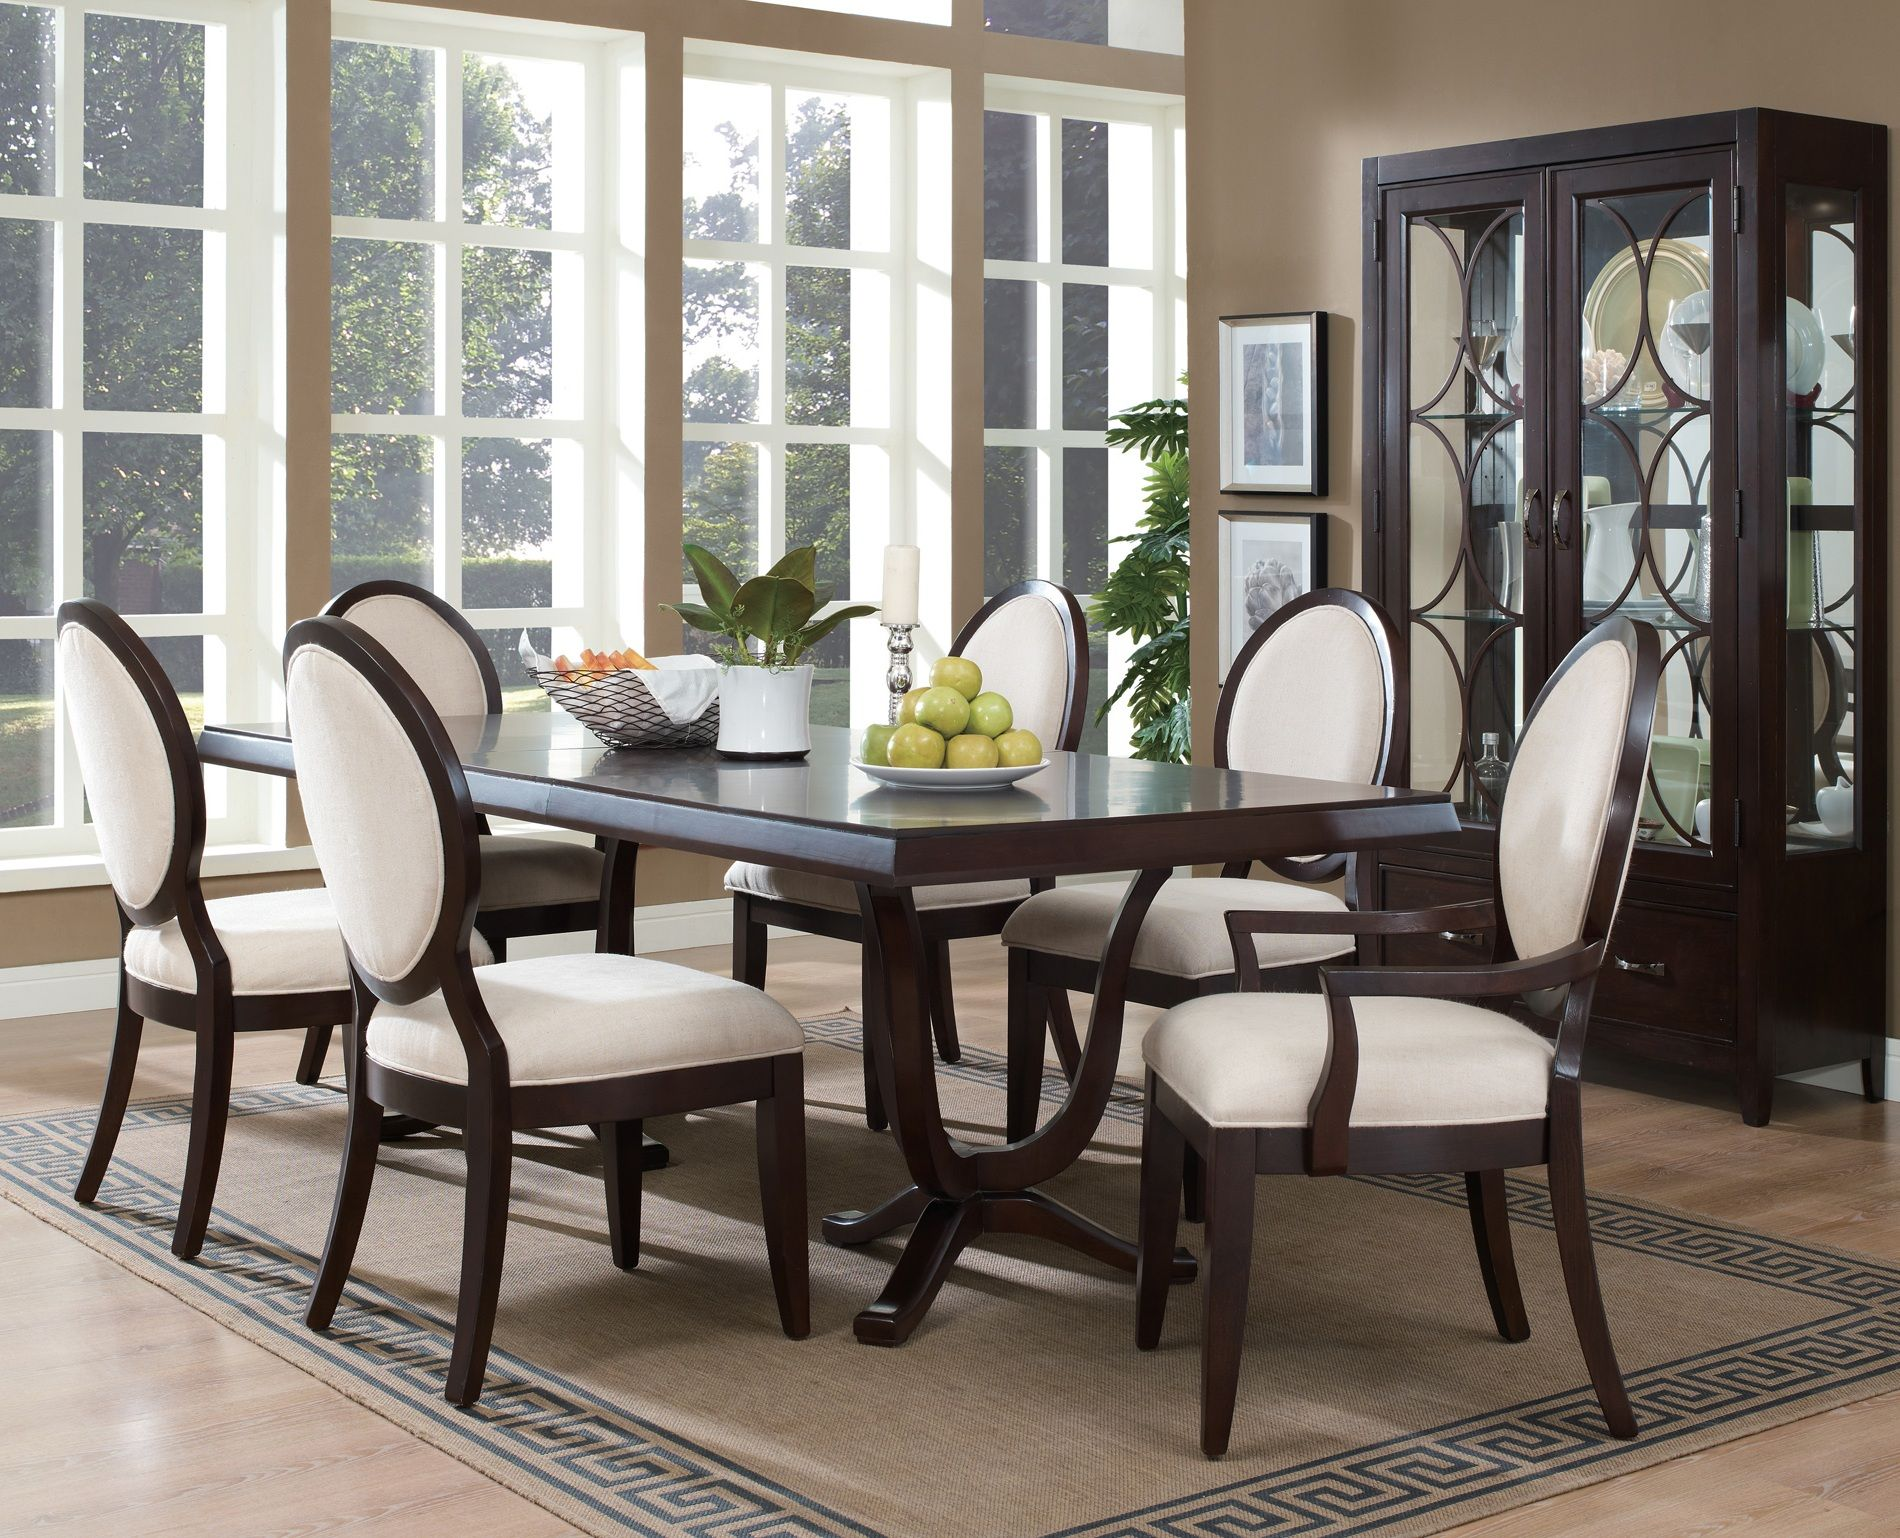 Amazing Décor For Formal Dining Room Designs. Dining Room Table SetsDining ...